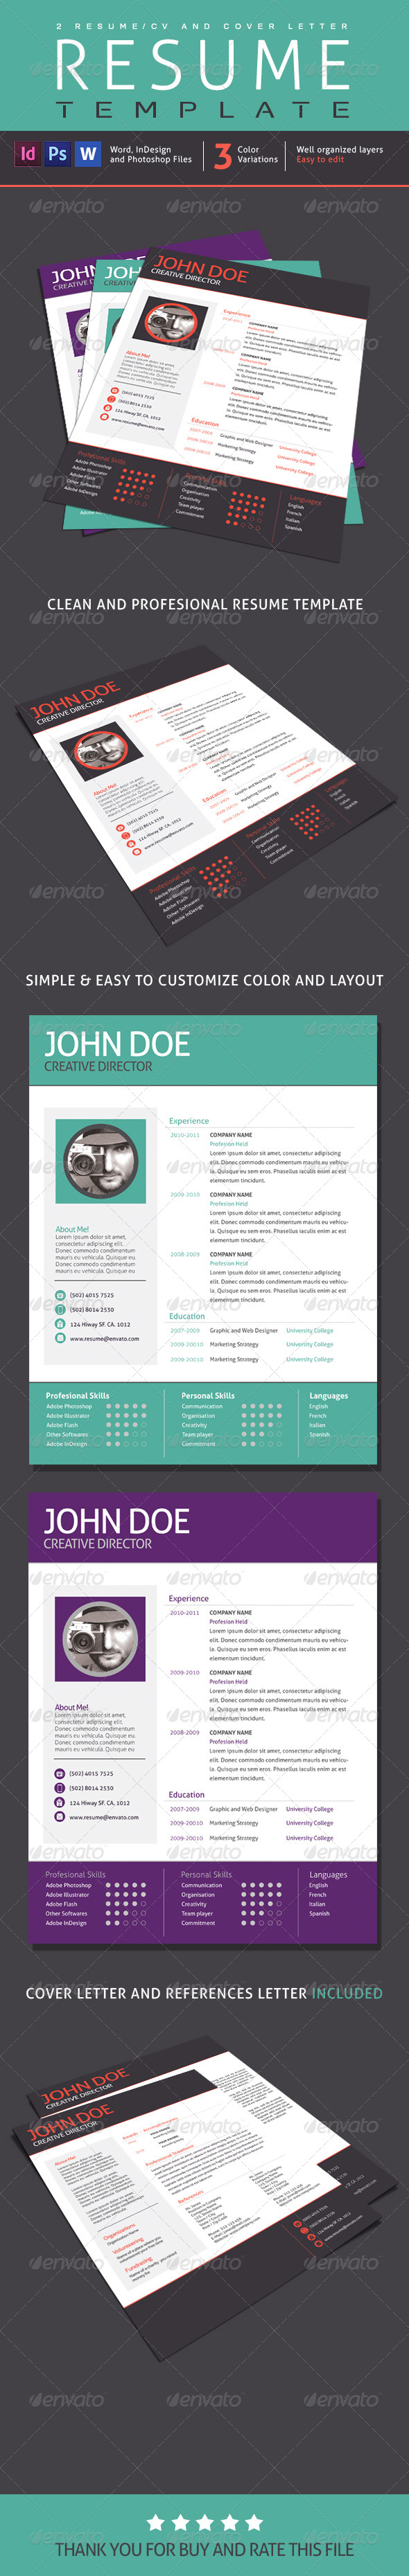 GraphicRiver 2 Resume Designs 1 Cover Letter V01 7662784